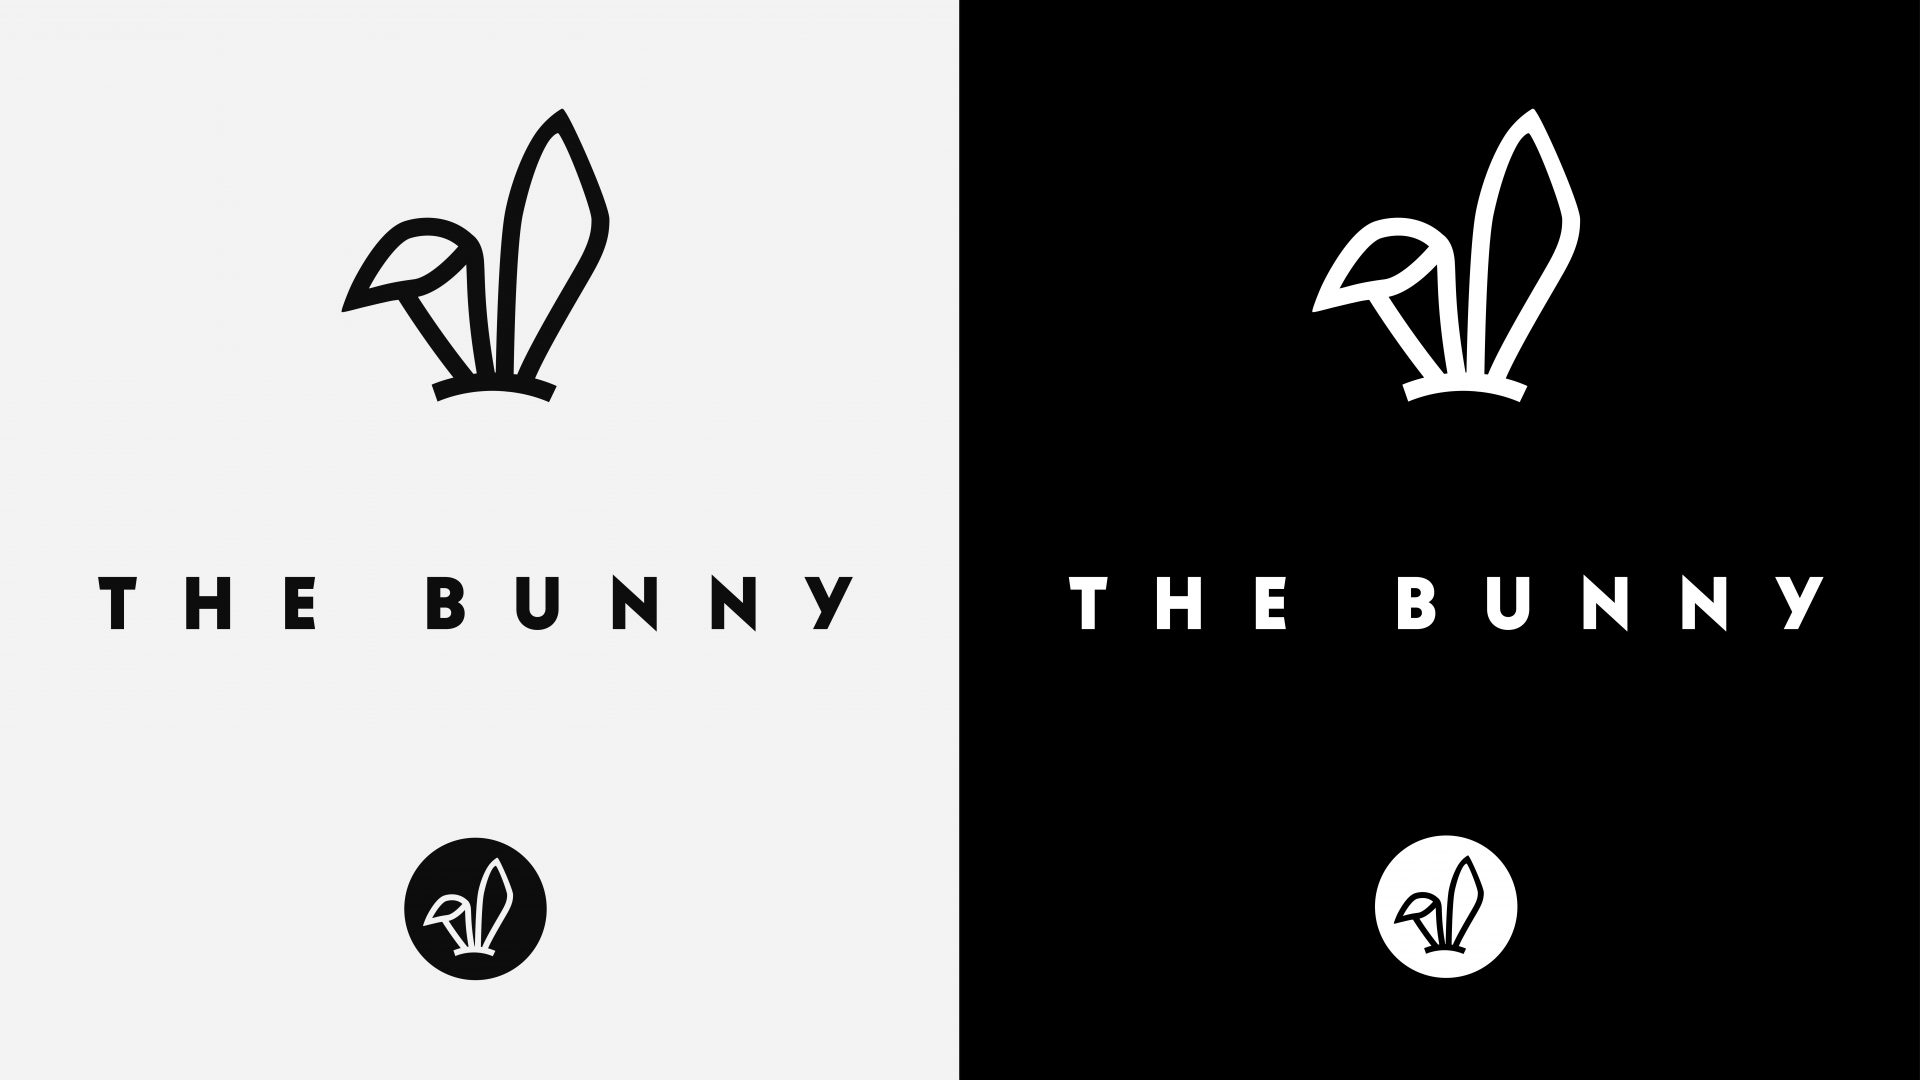 Crate47 Brand Identity – The Bunny logo and marque